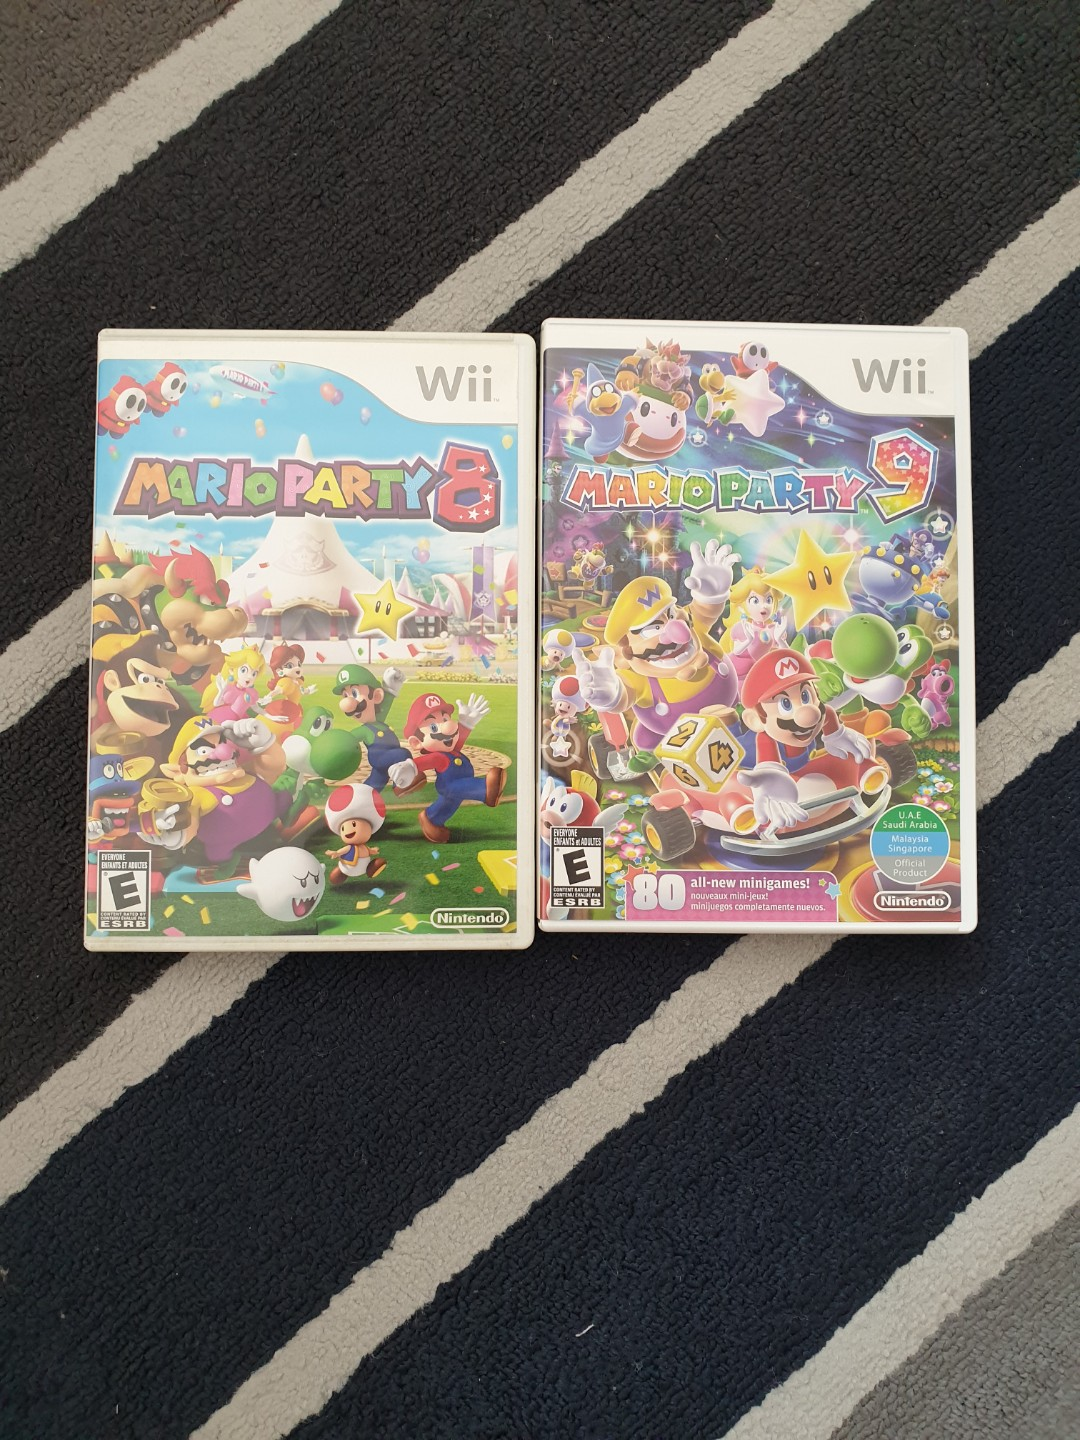 Wii game Mario Party 8 and Mario Party 9